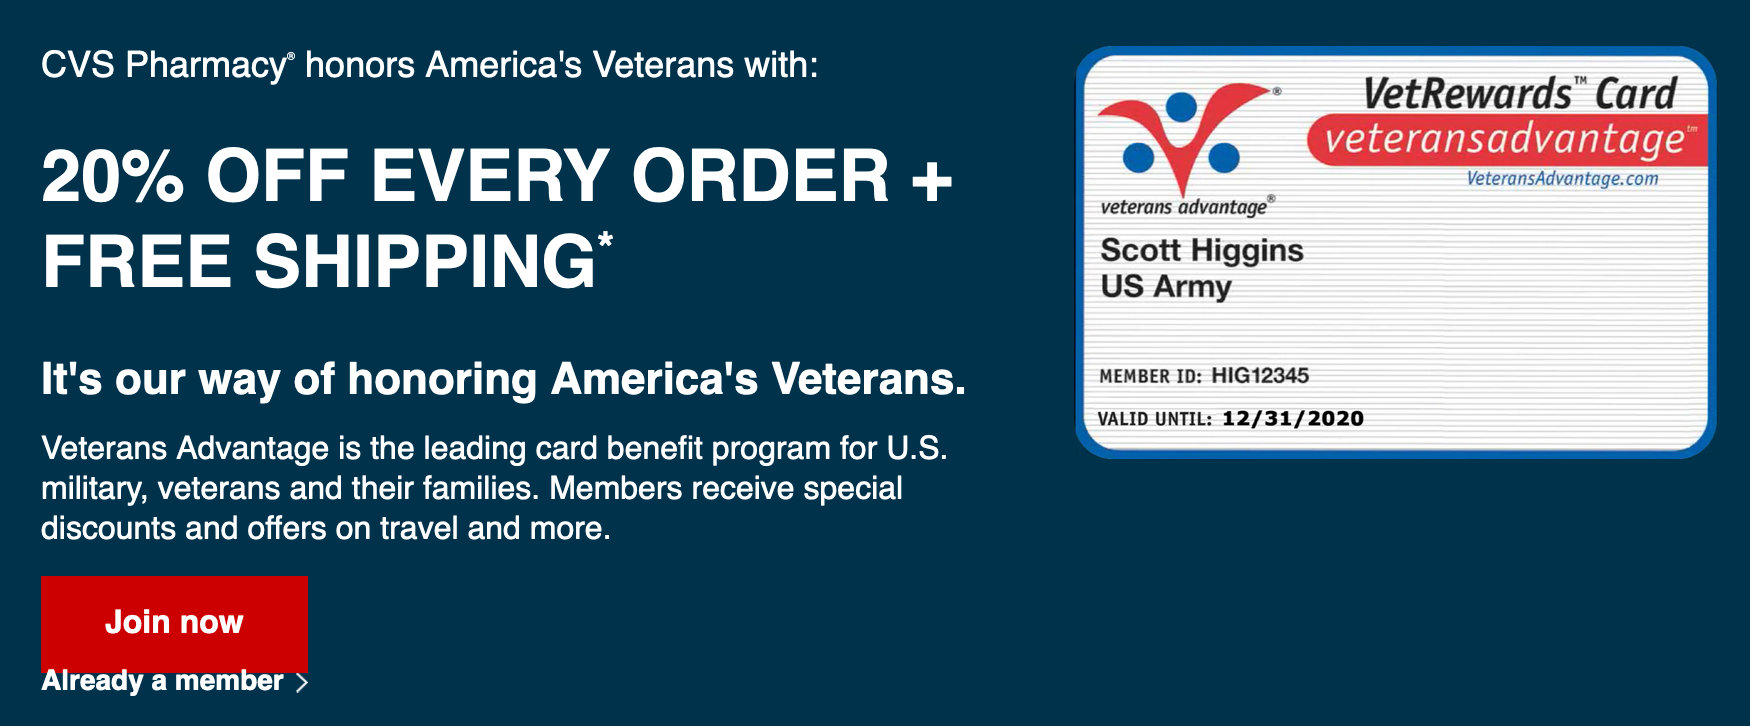 CVS Military Veteran Discounts